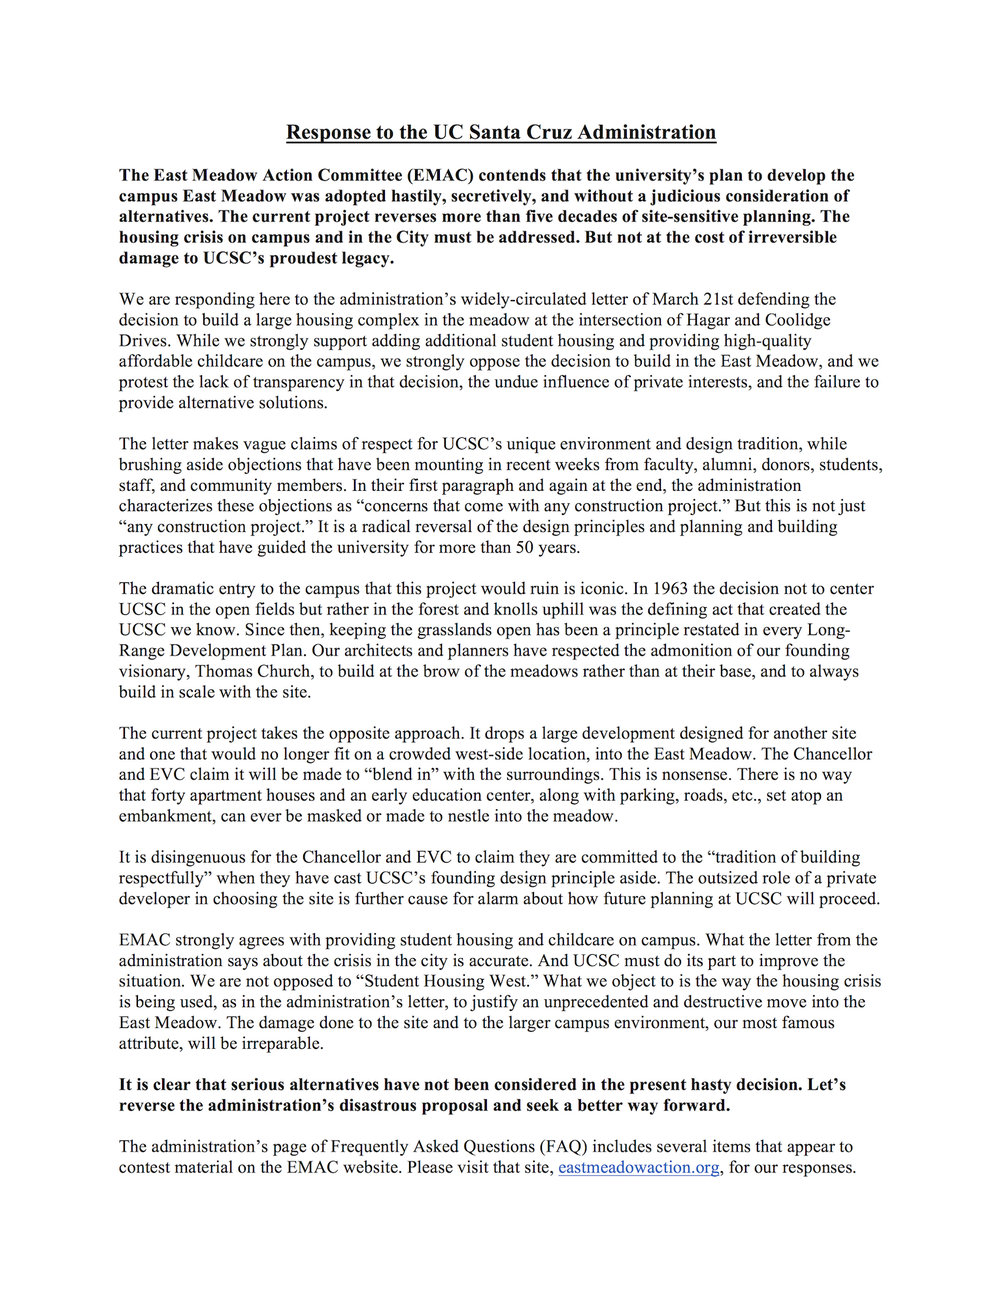 EMAC Statement - Single Page.jpg